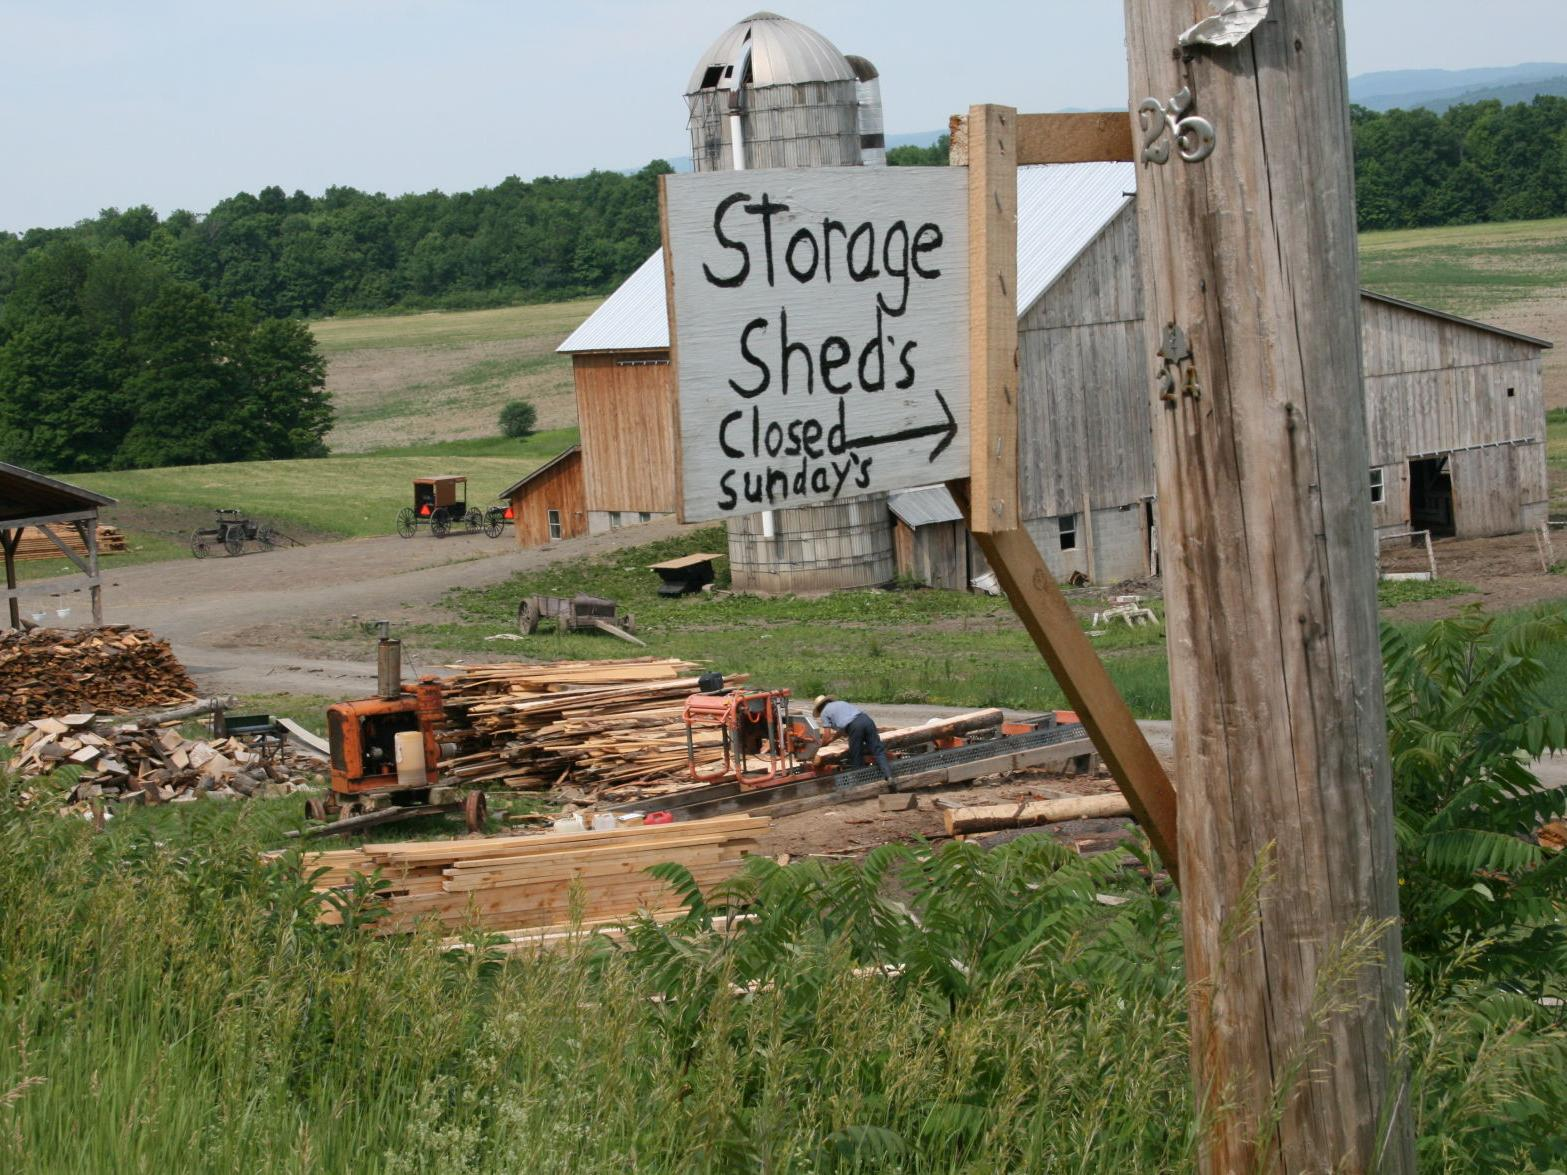 Whitehall S Amish Have Impact On Farmland Taxes Tourism Local Poststar Com